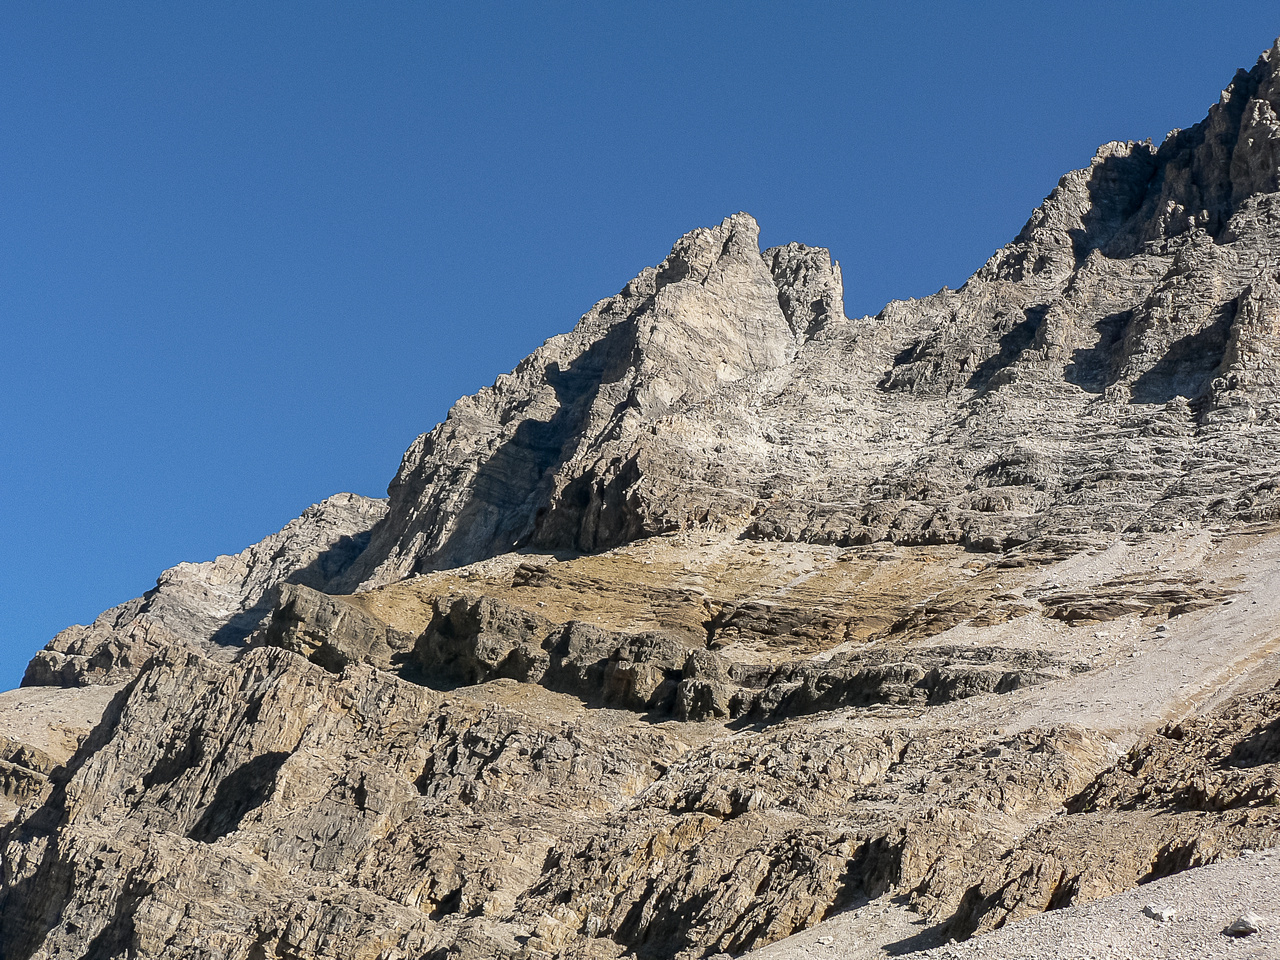 Our traverse route to Pika seen from Hidden Lake is above the cliff at mid photo casting the shadow.